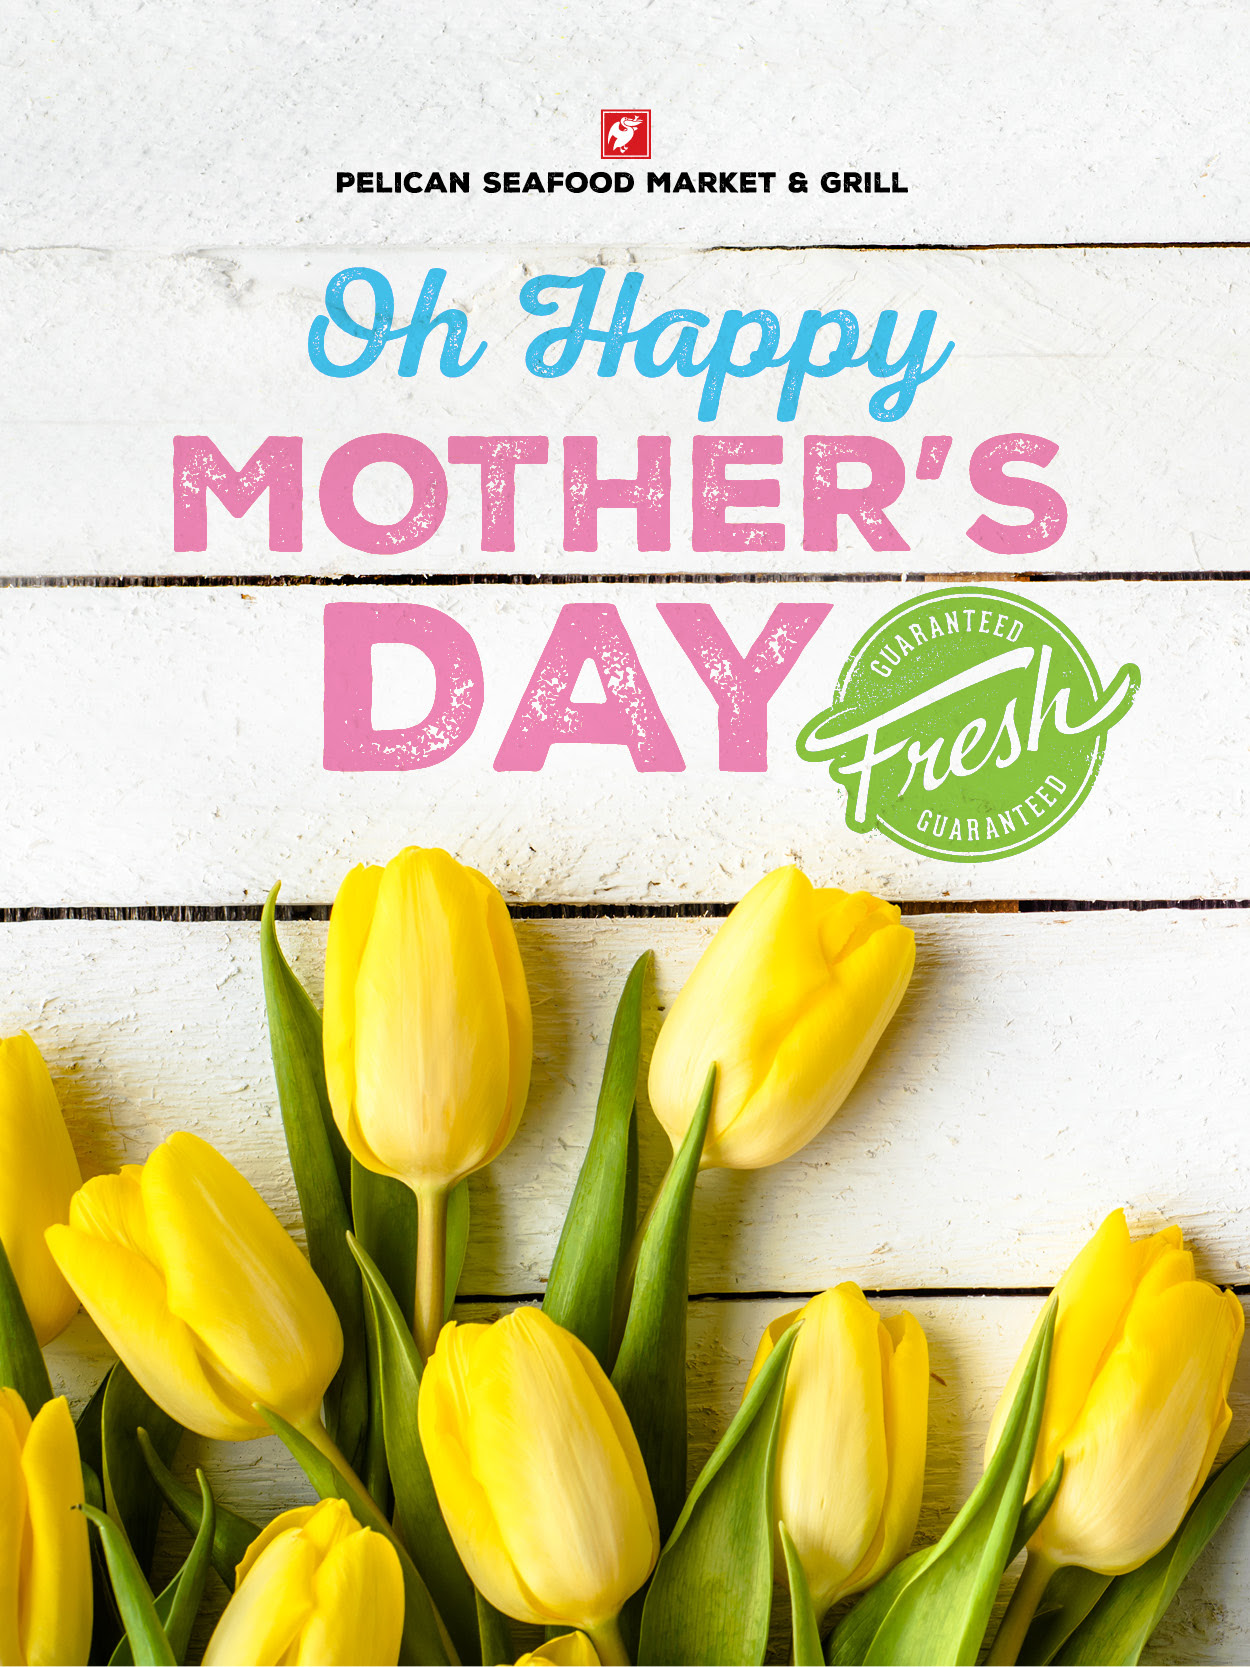 Happy Mother's Day with Tagline